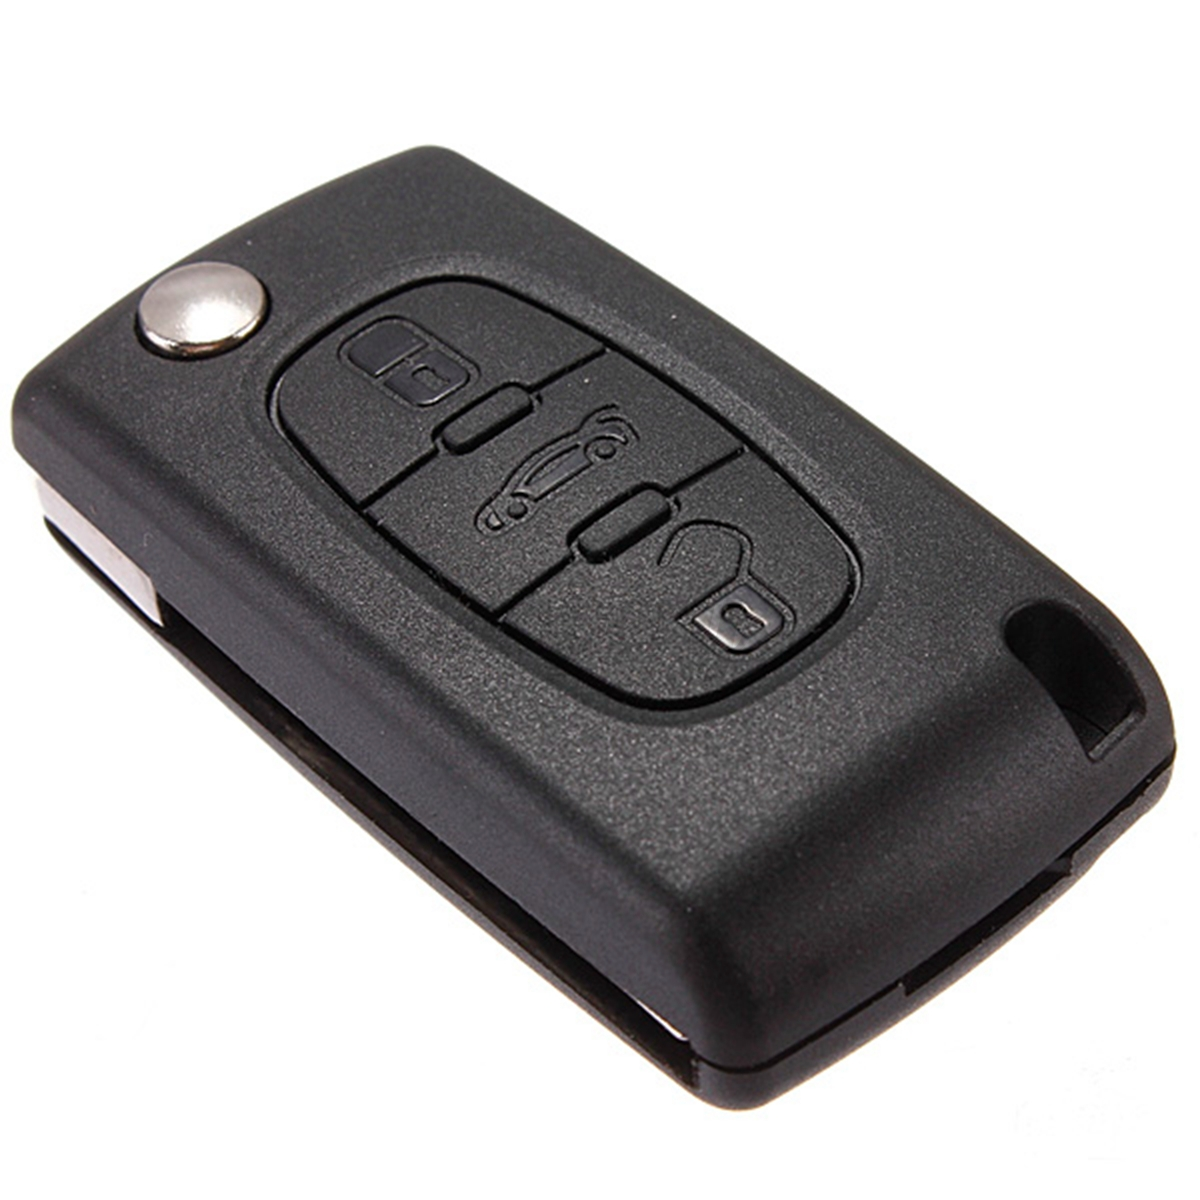 3 button remote key fob case shell uncut blade for citroen c4 grand picasso new ebay. Black Bedroom Furniture Sets. Home Design Ideas